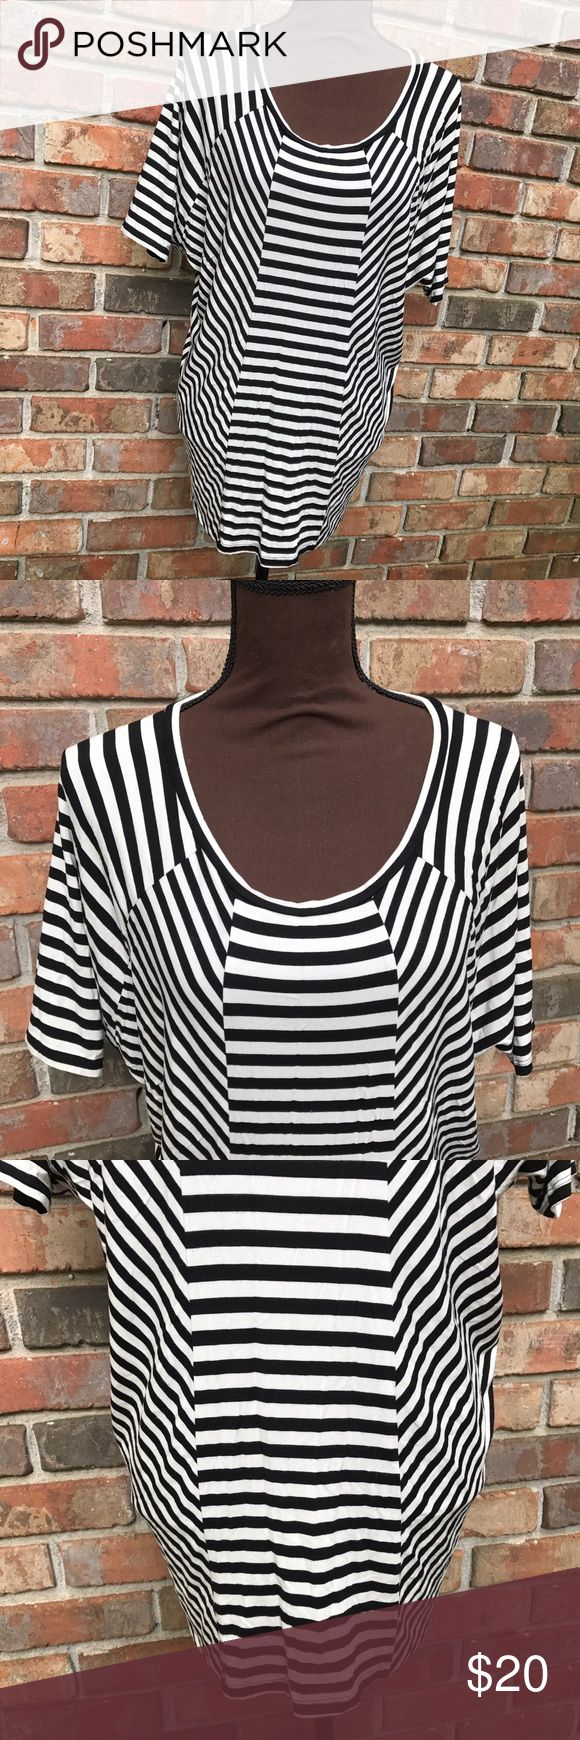 Multi Diagonal Striped Black & White Batwing Top Lightly Used | Excellent Condition | Black & White Colors | Multi Diagonal Stripes | Batwing Sleeves | Short Sleeves | Lightweight | Length: 17.5ins | Bust: 48ins | Sleeve Length: 13.5ins | 96% Rayon | 4% Spandex | Kenneth Cole Tops Blouses